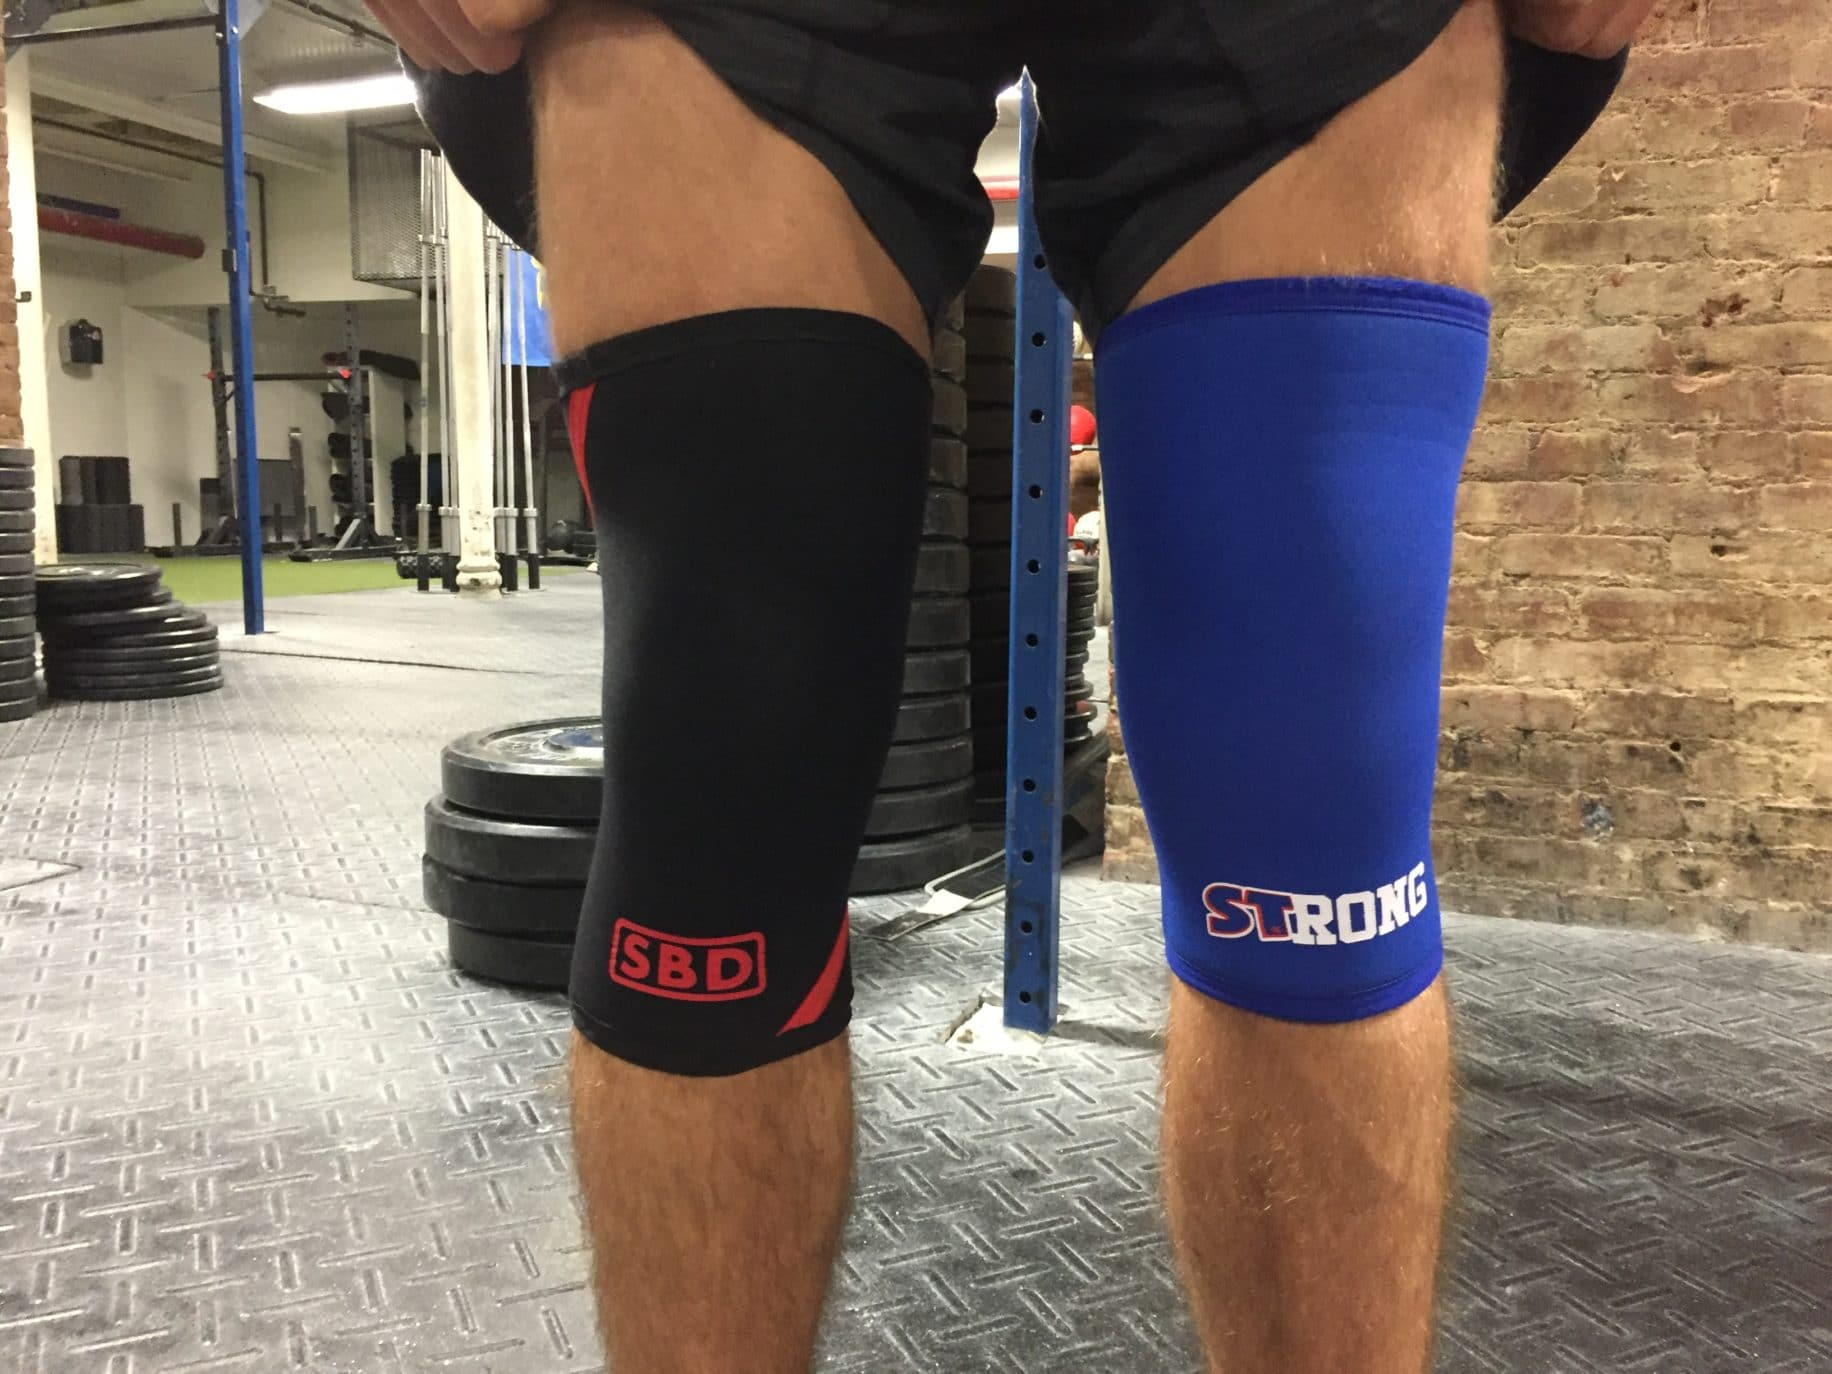 SBD Vs  Slingshot STrong Knee Sleeves — Which Is Best for Squats